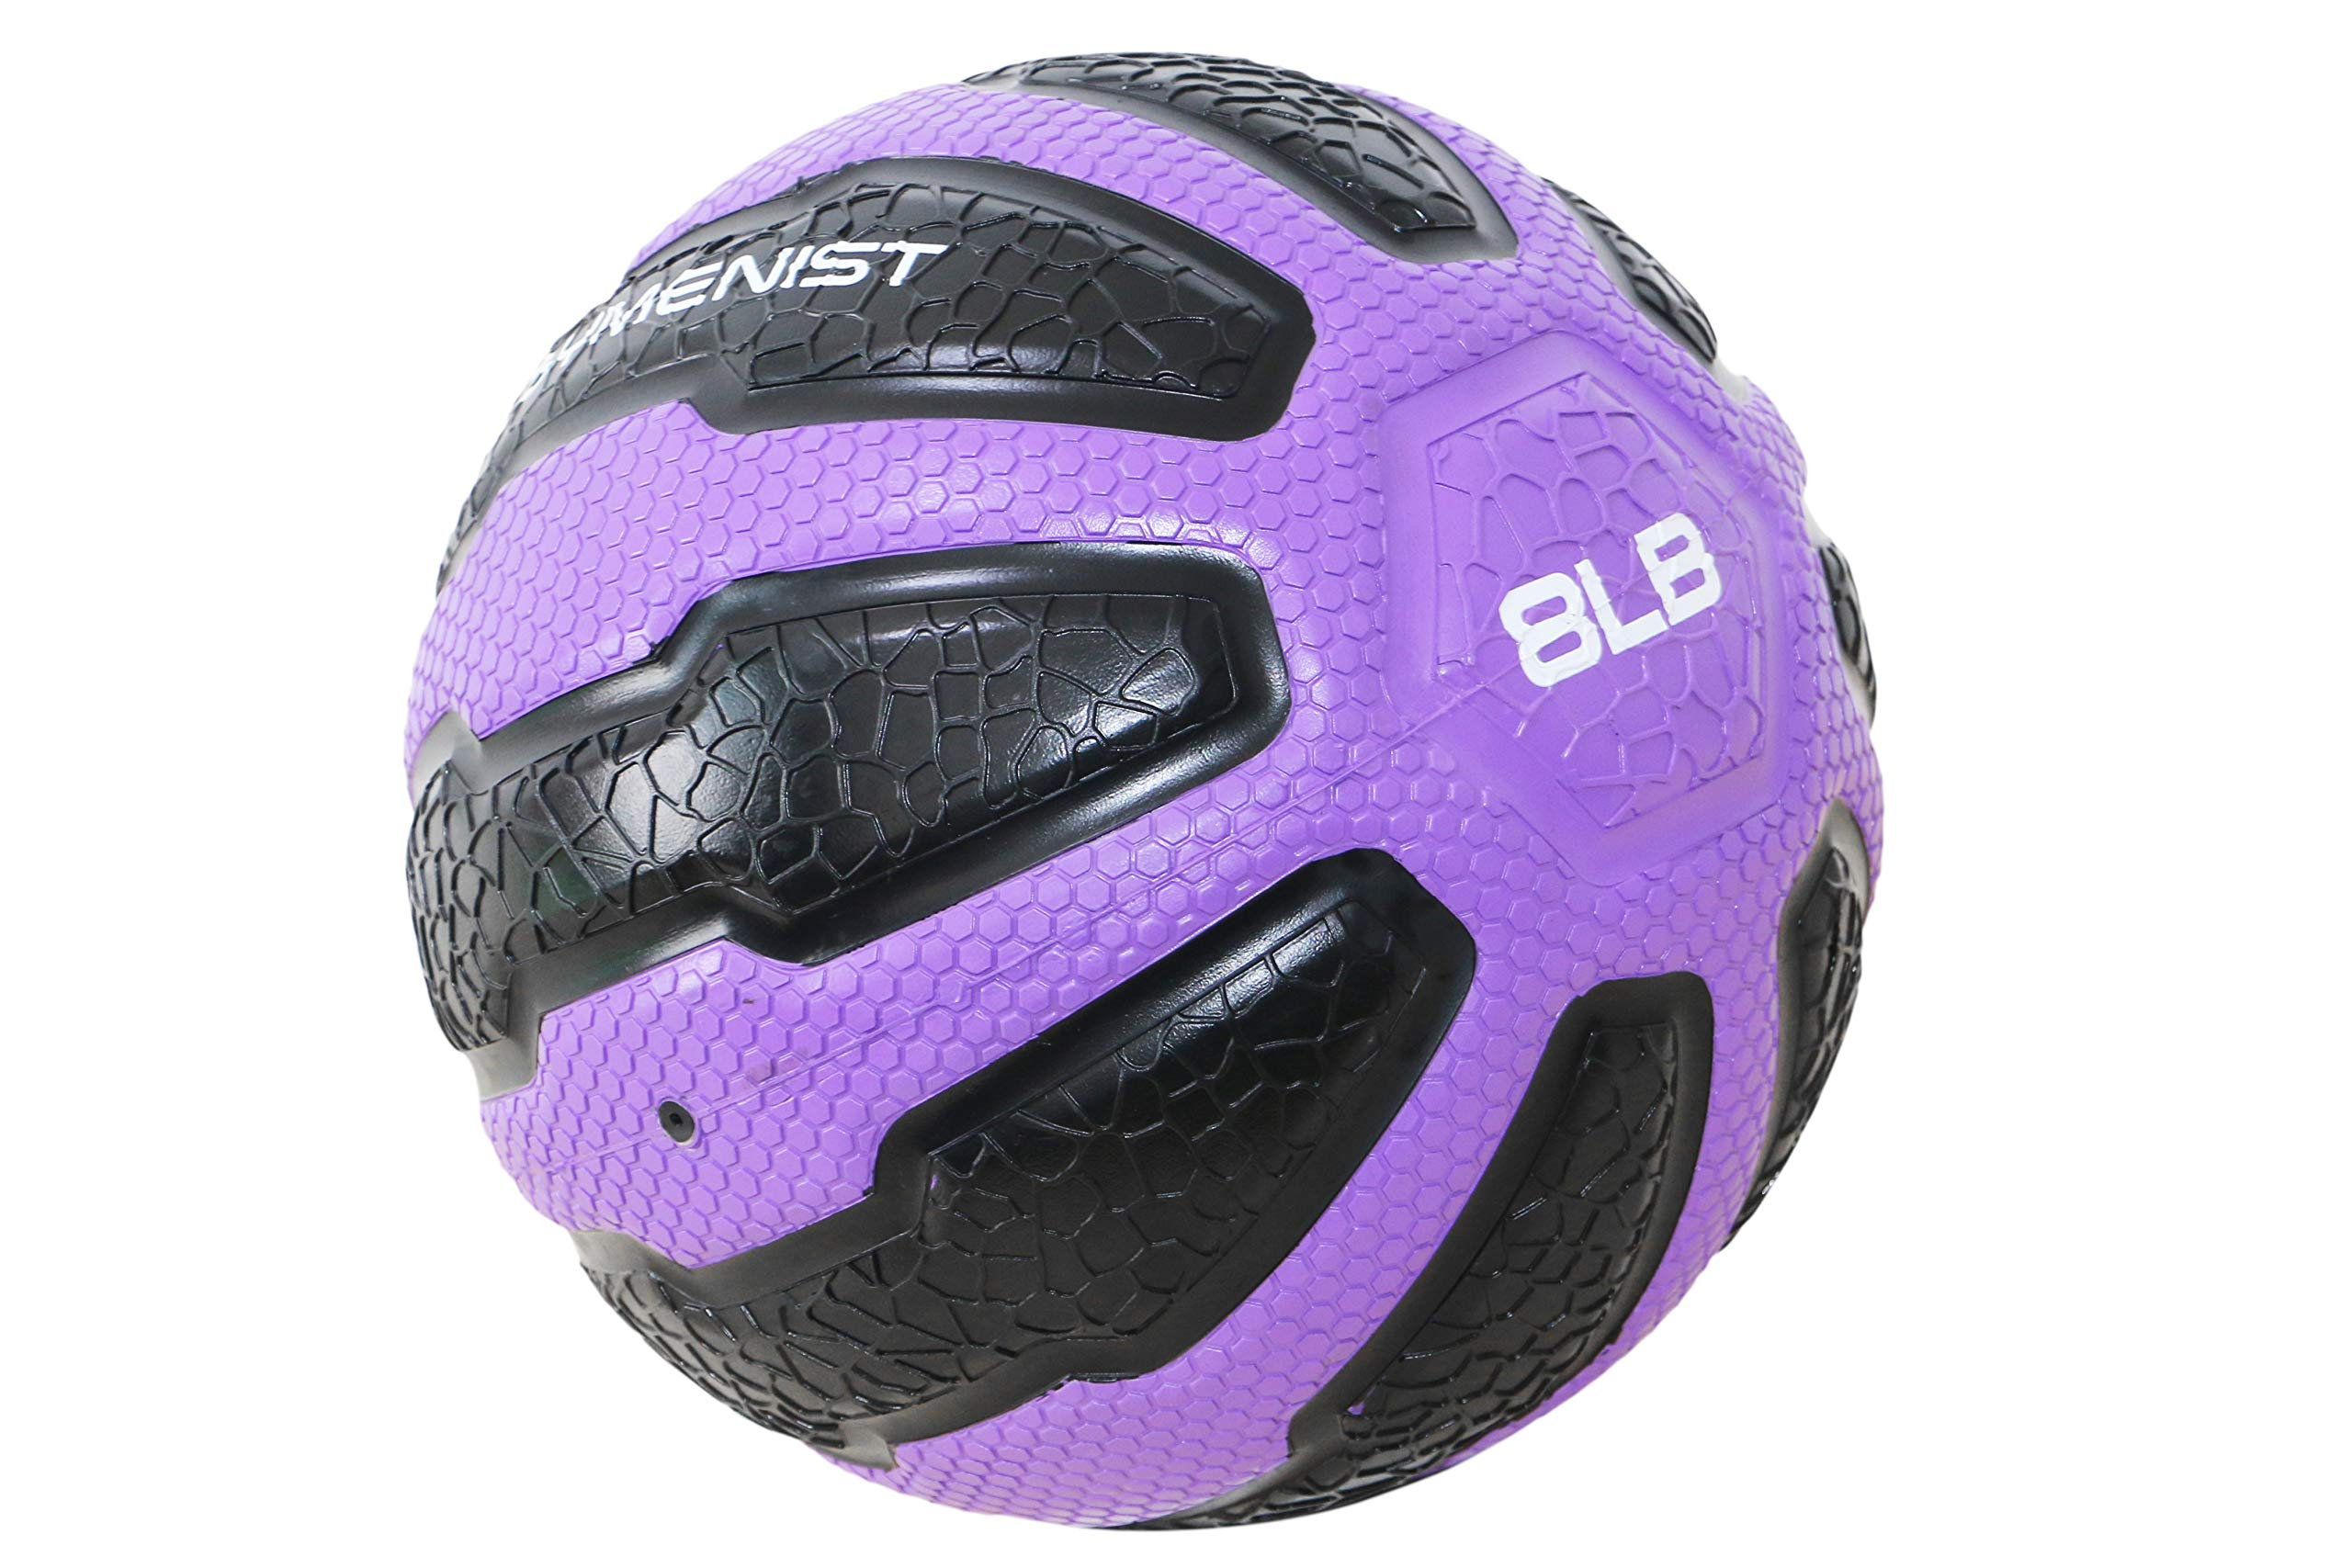 GYMENIST Rubber Medicine Ball with Textured Grip, Available in 9 Sizes, 2-20 LB, Weighted Fitness Balls,Improves Balance and Flexibility - Great for Gym, Workouts, (8 LB (Purple-Black))